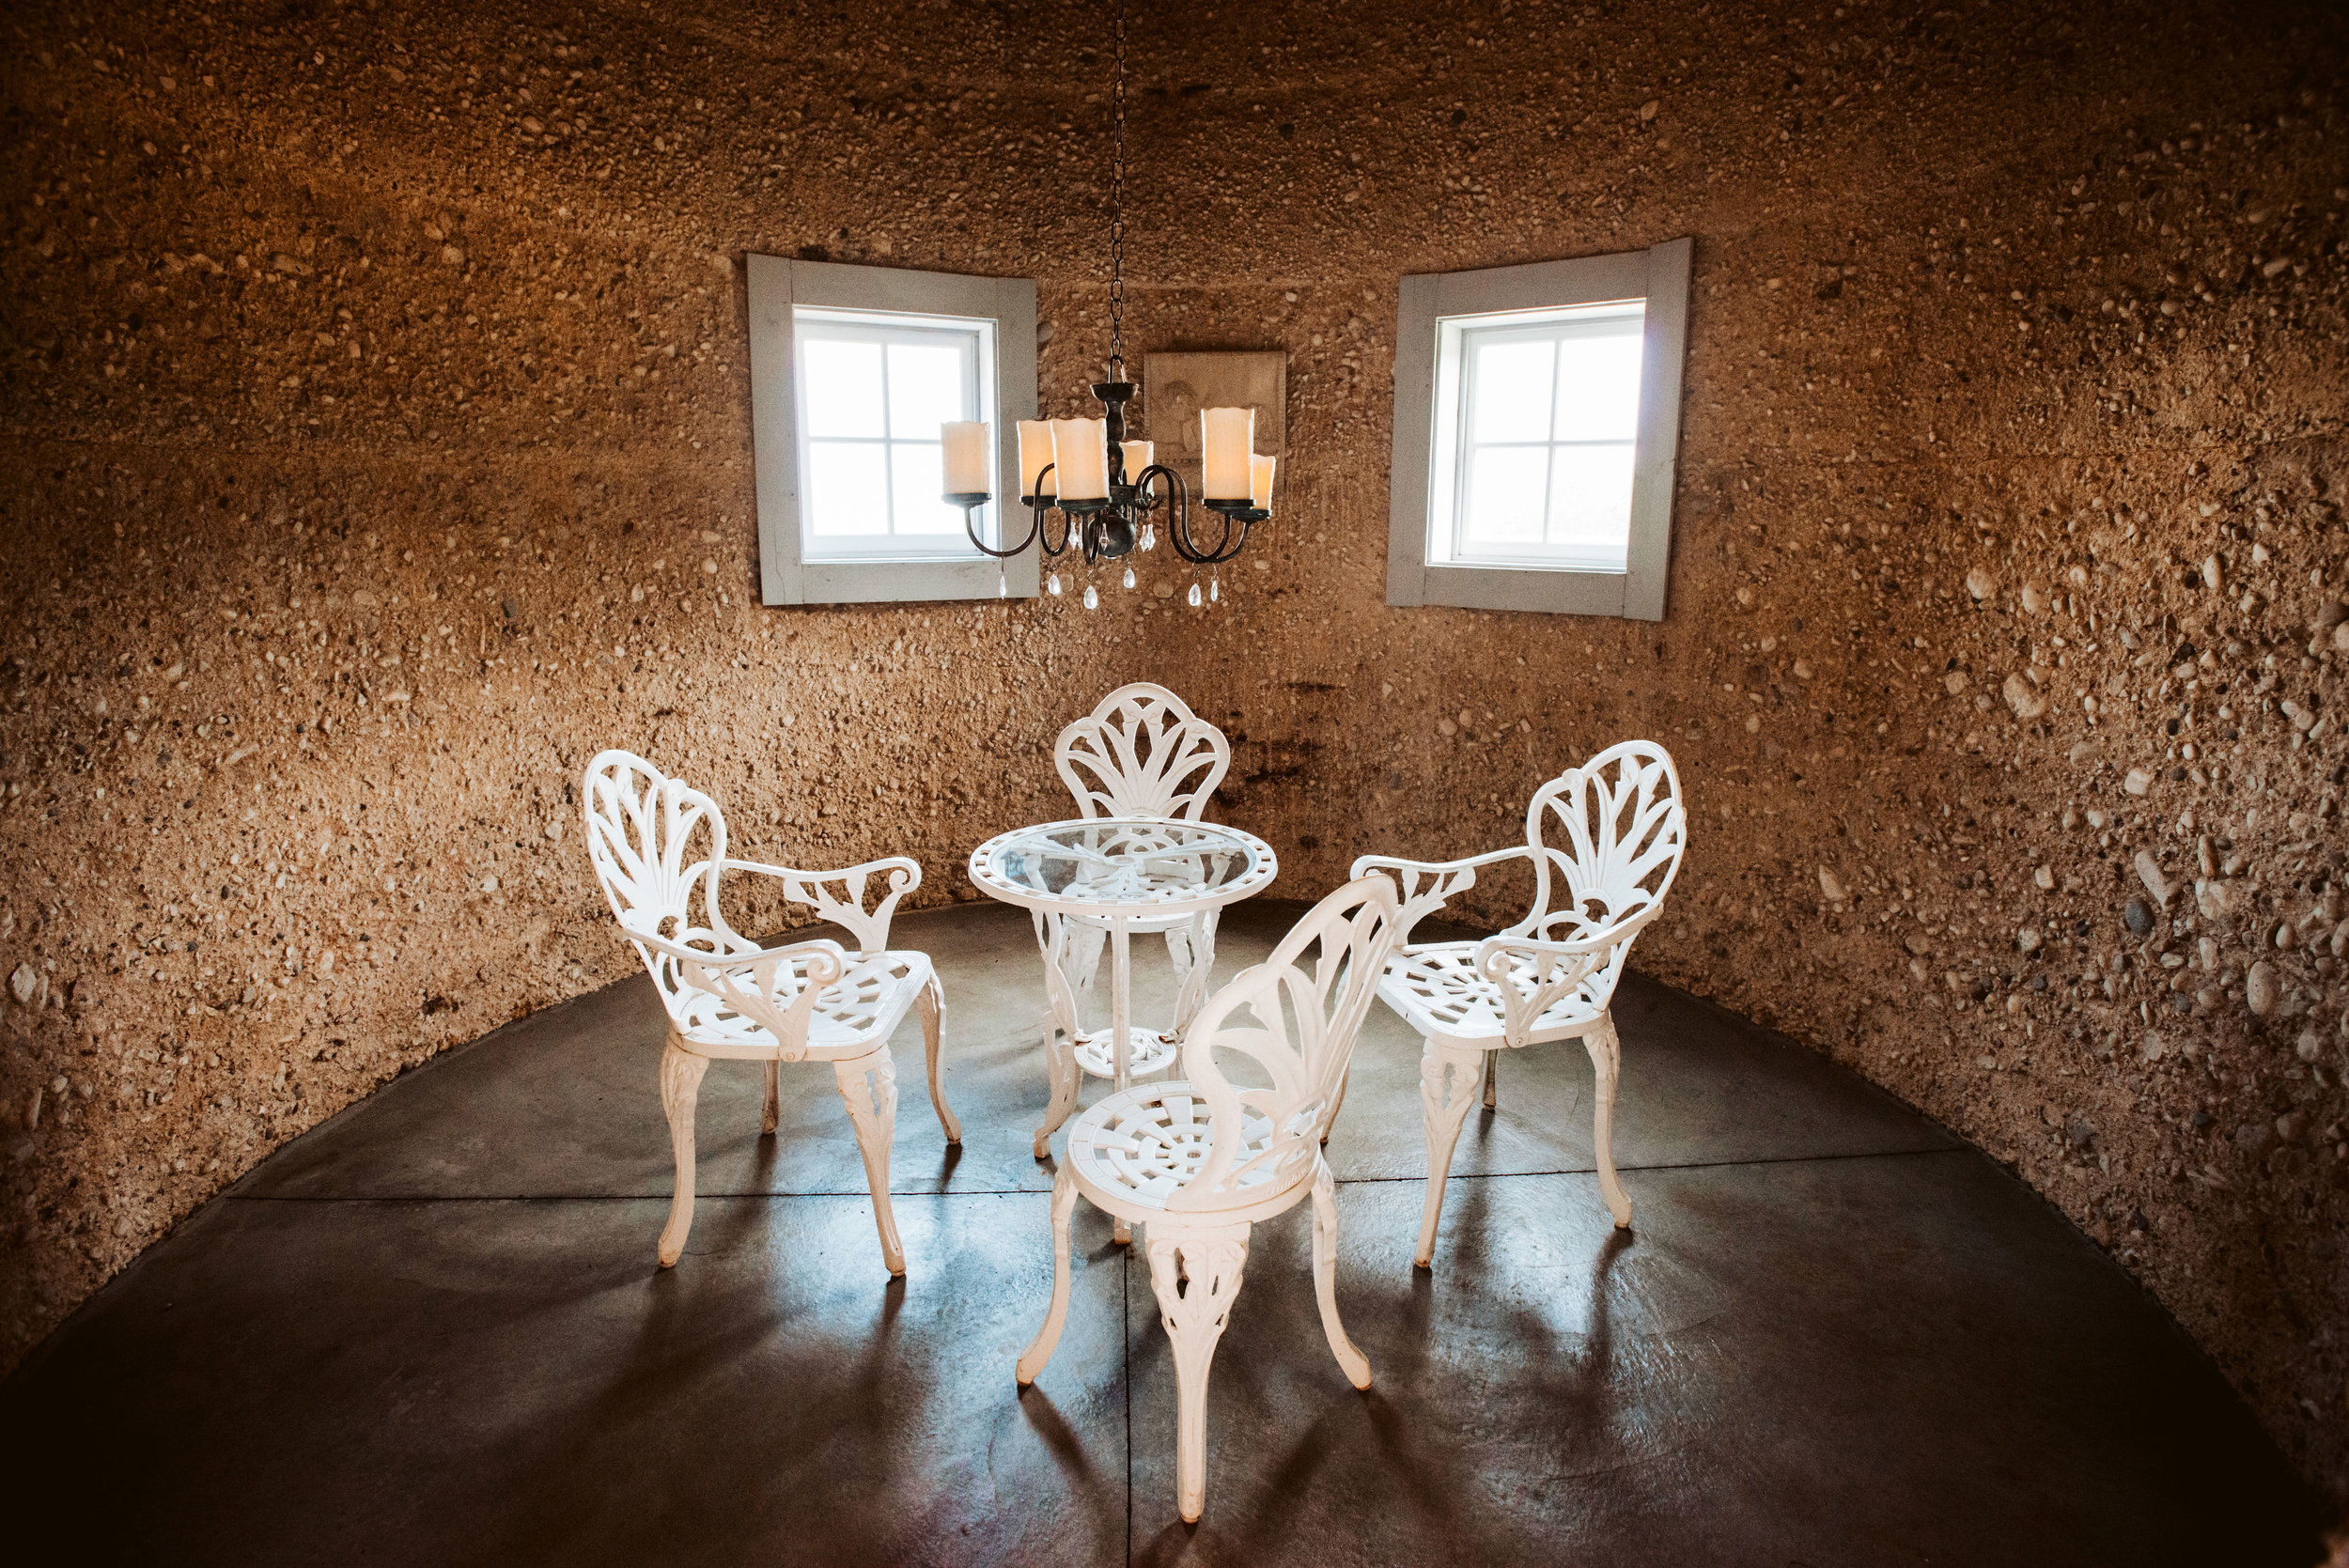 barn-wedding-silo-seating-nook.jpg